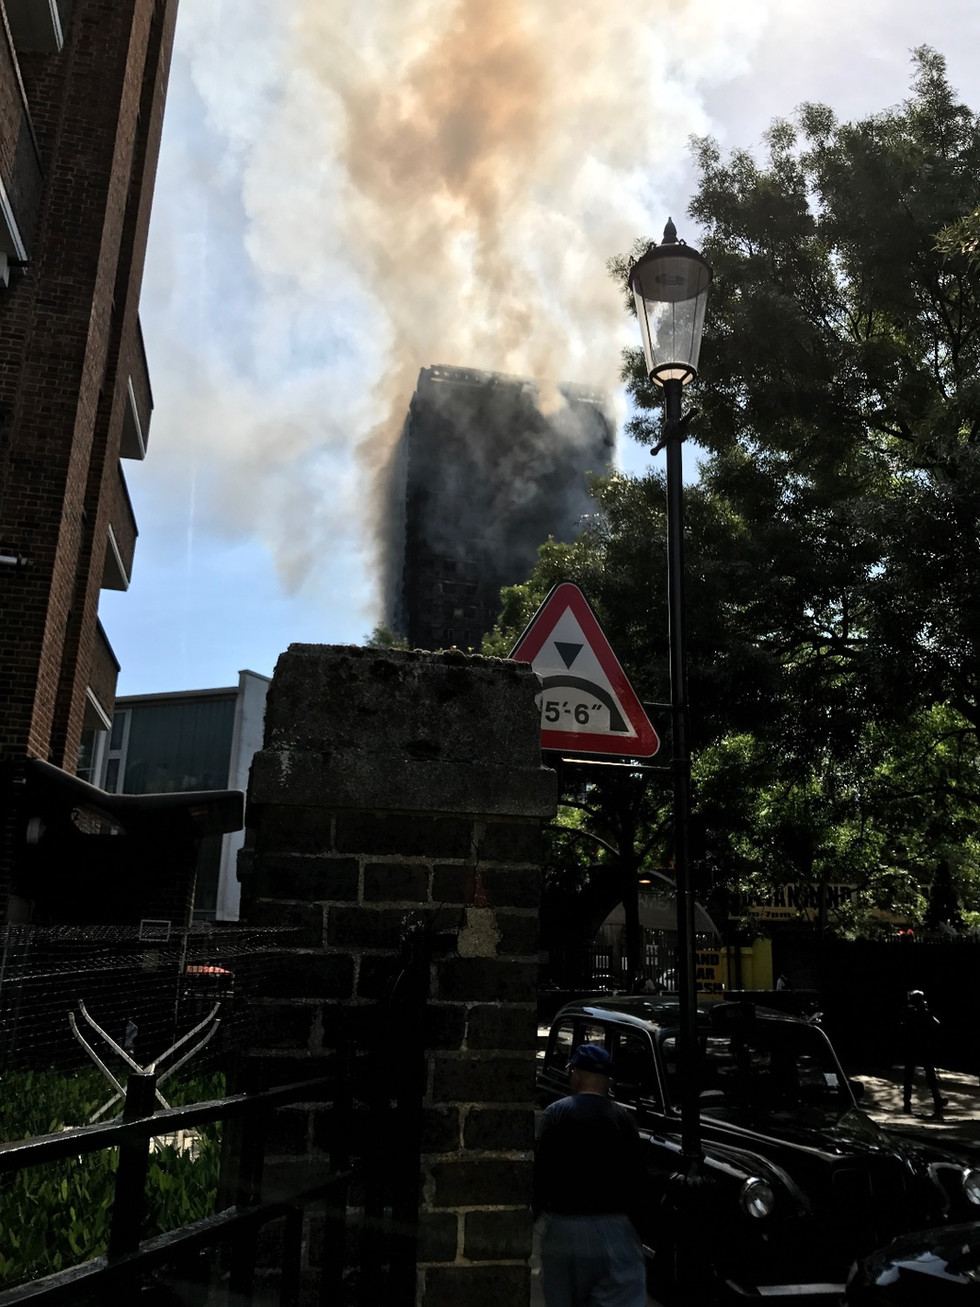 HOW BADLY HAS GRENFELL BEEN HANDLED?!